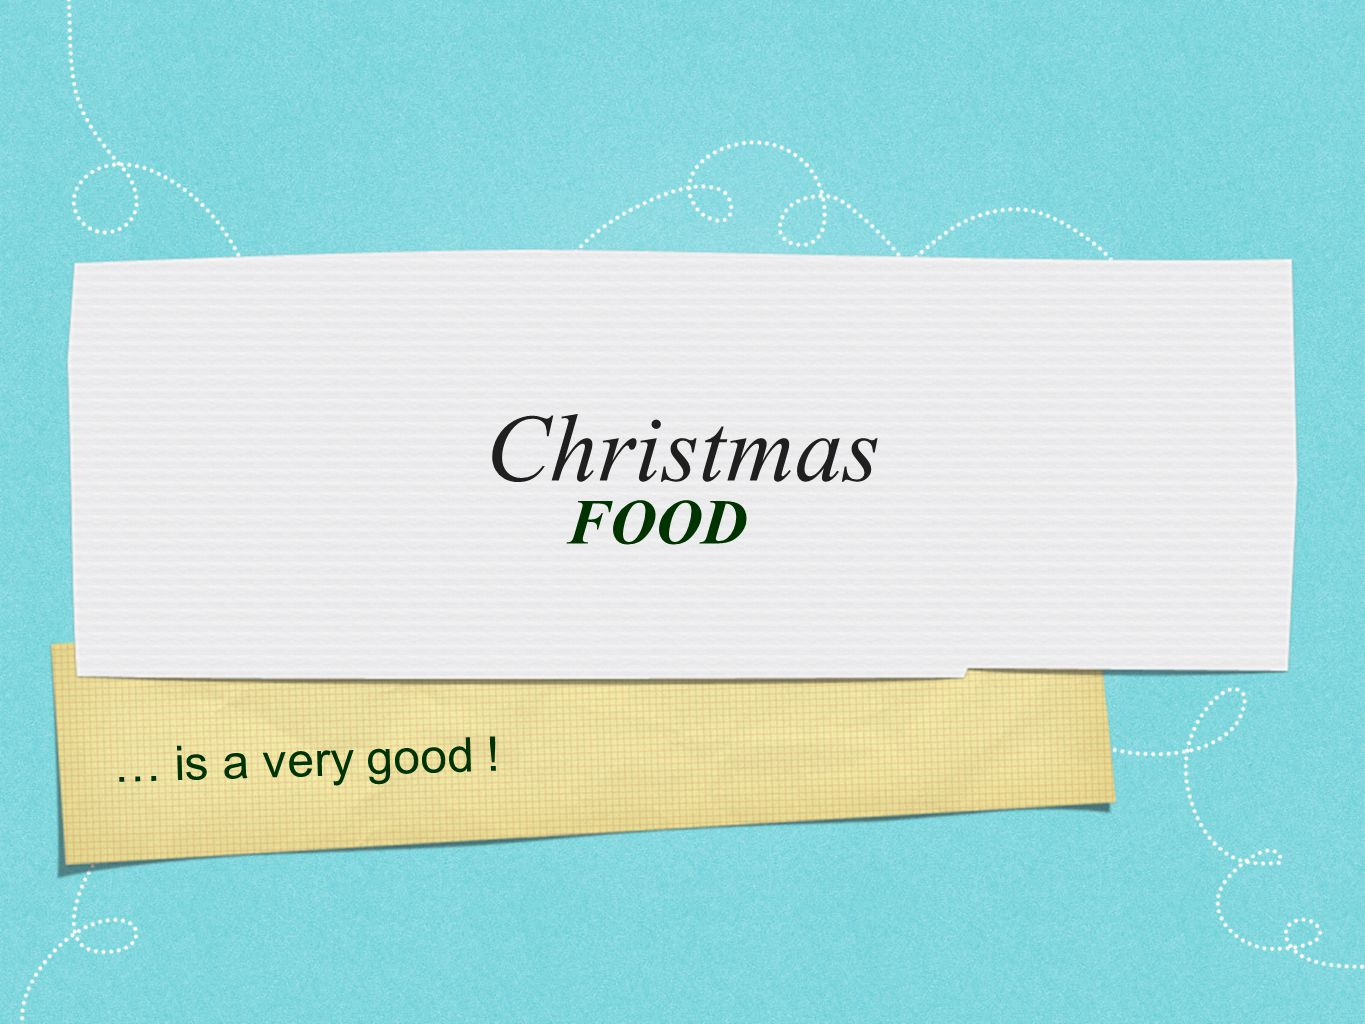 … is a very good ! Christmas FOOD